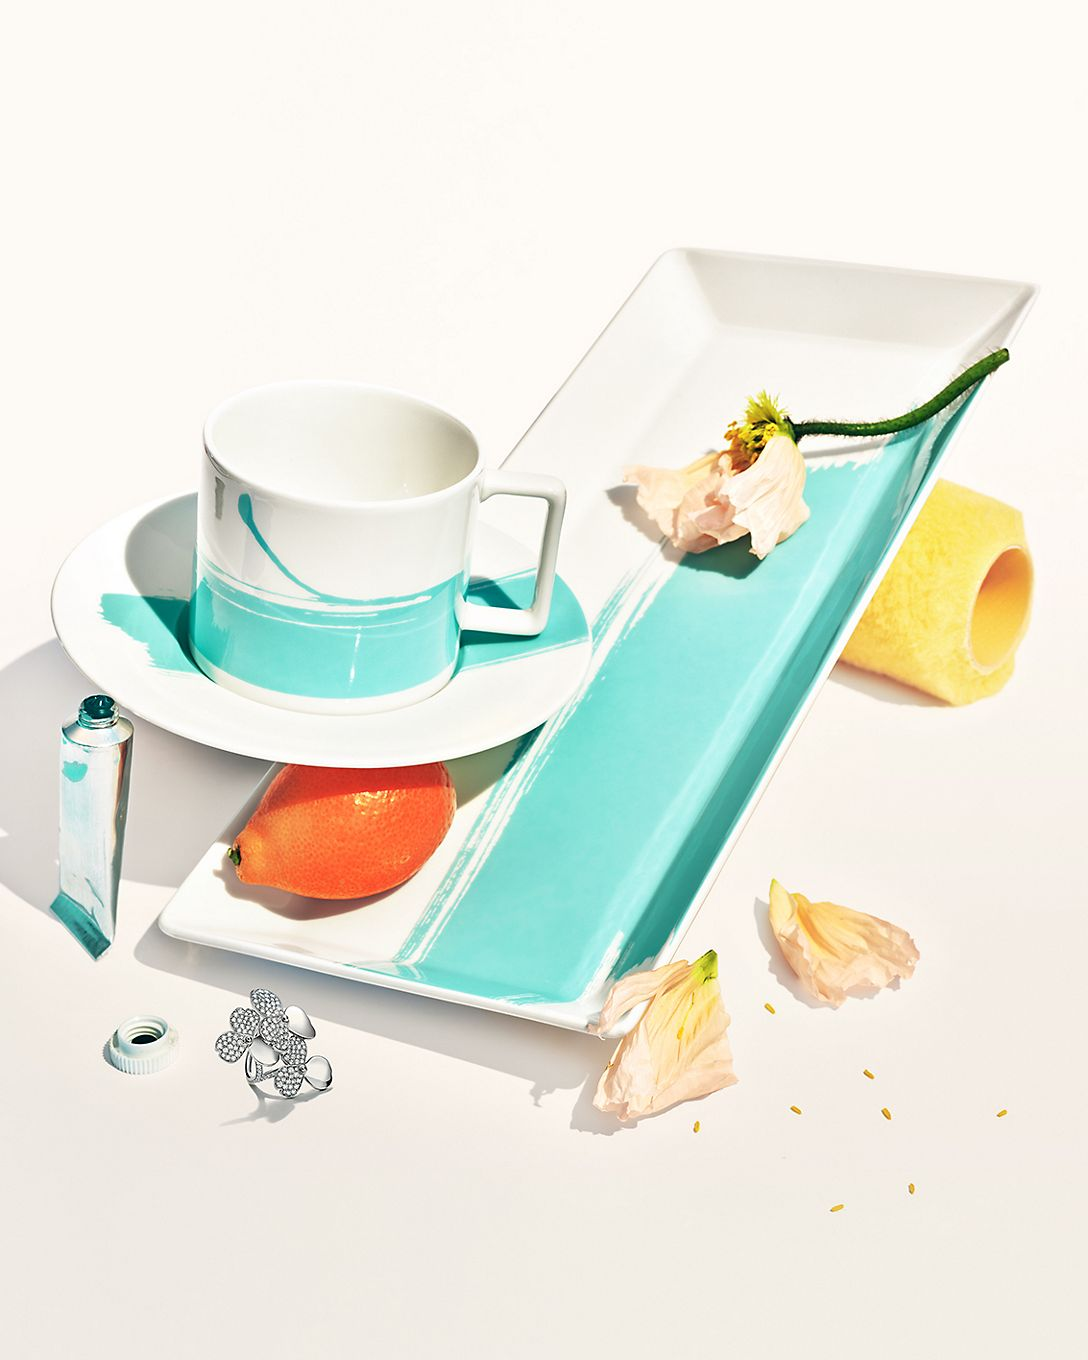 Shop Tiffany & Co. Tableware